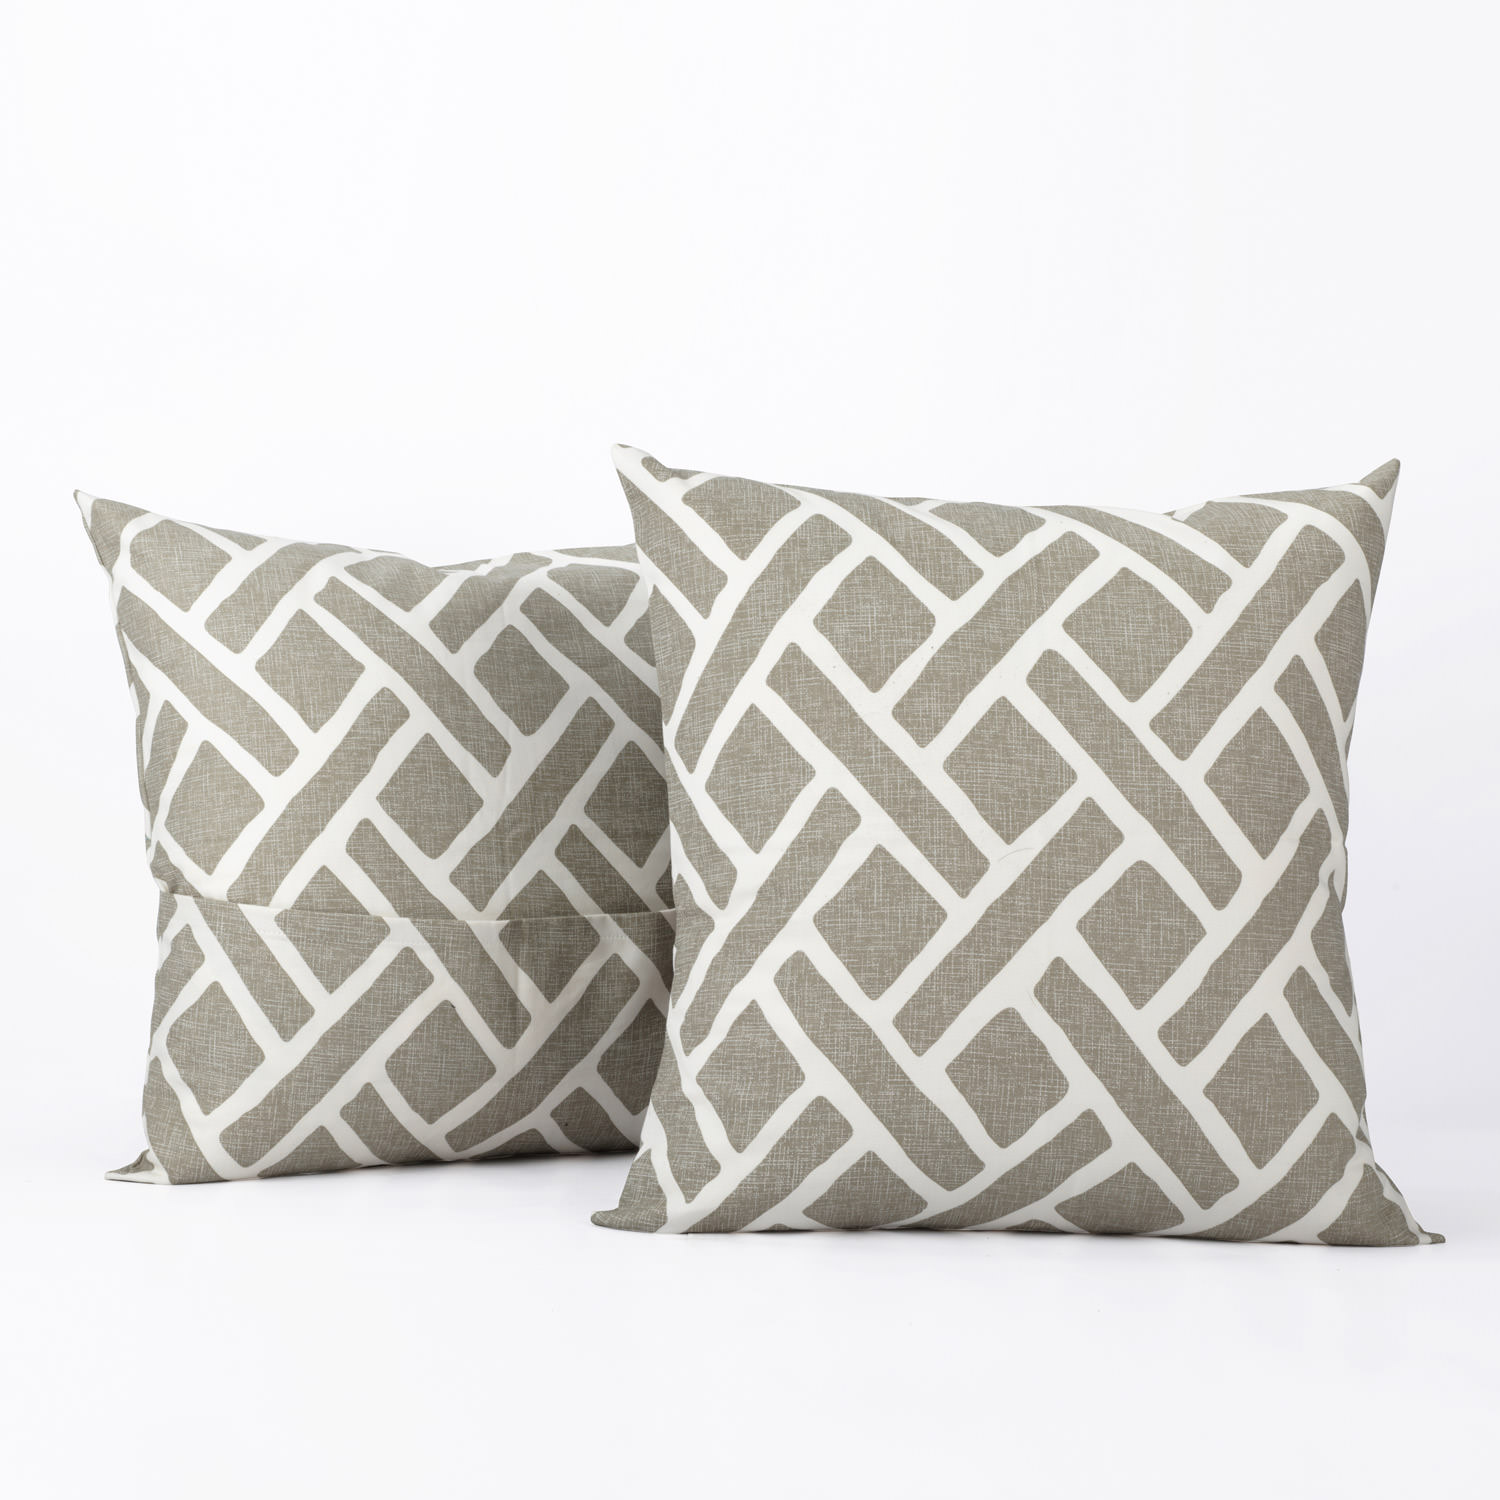 Martinique Taupe Printed Cotton Cover- PAIR